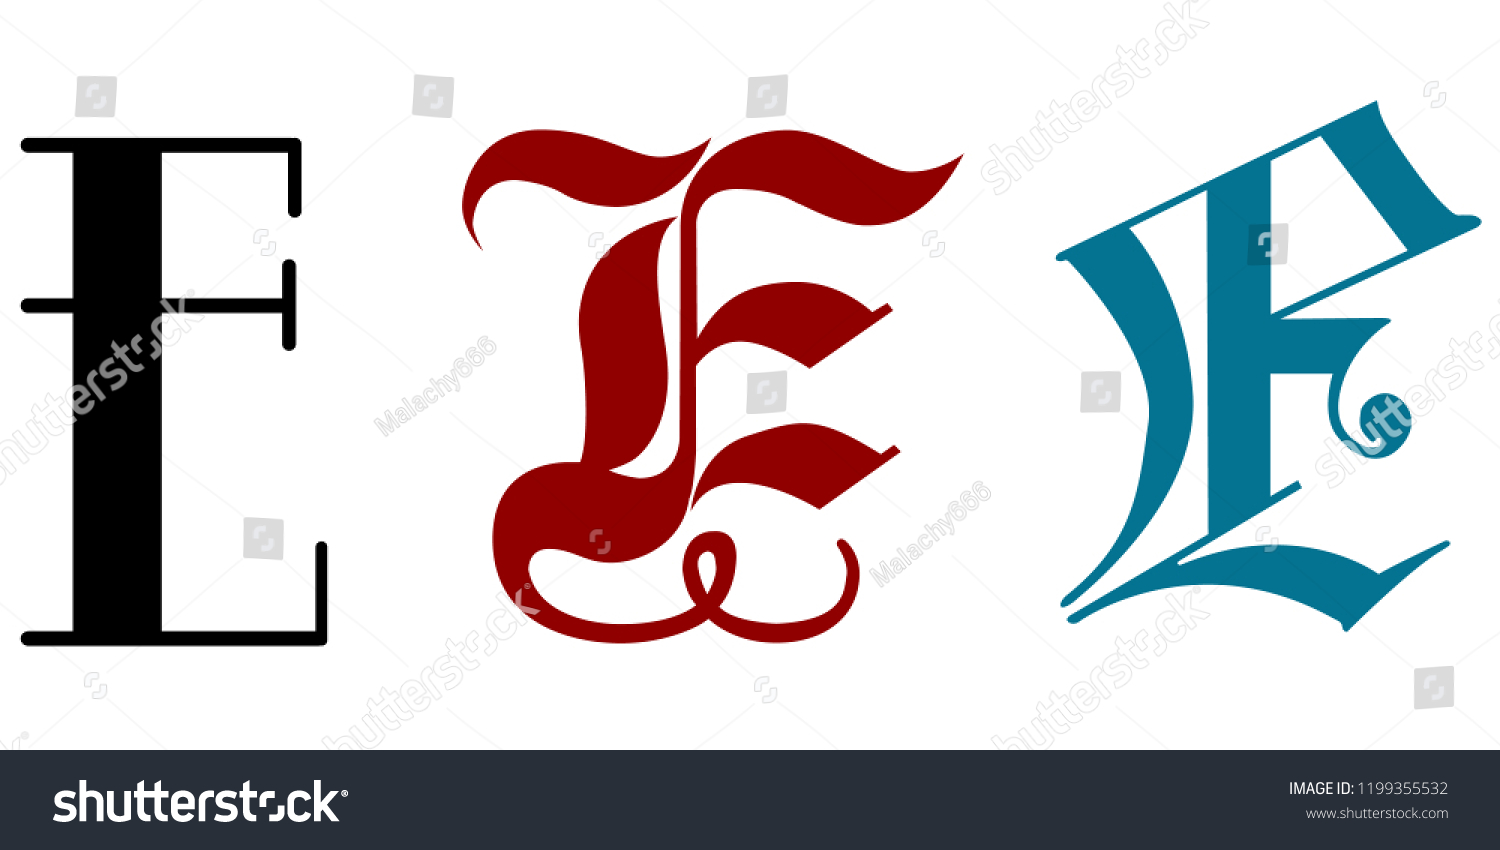 Letter E Three Different Calligraphy Styles Stock Vector Royalty